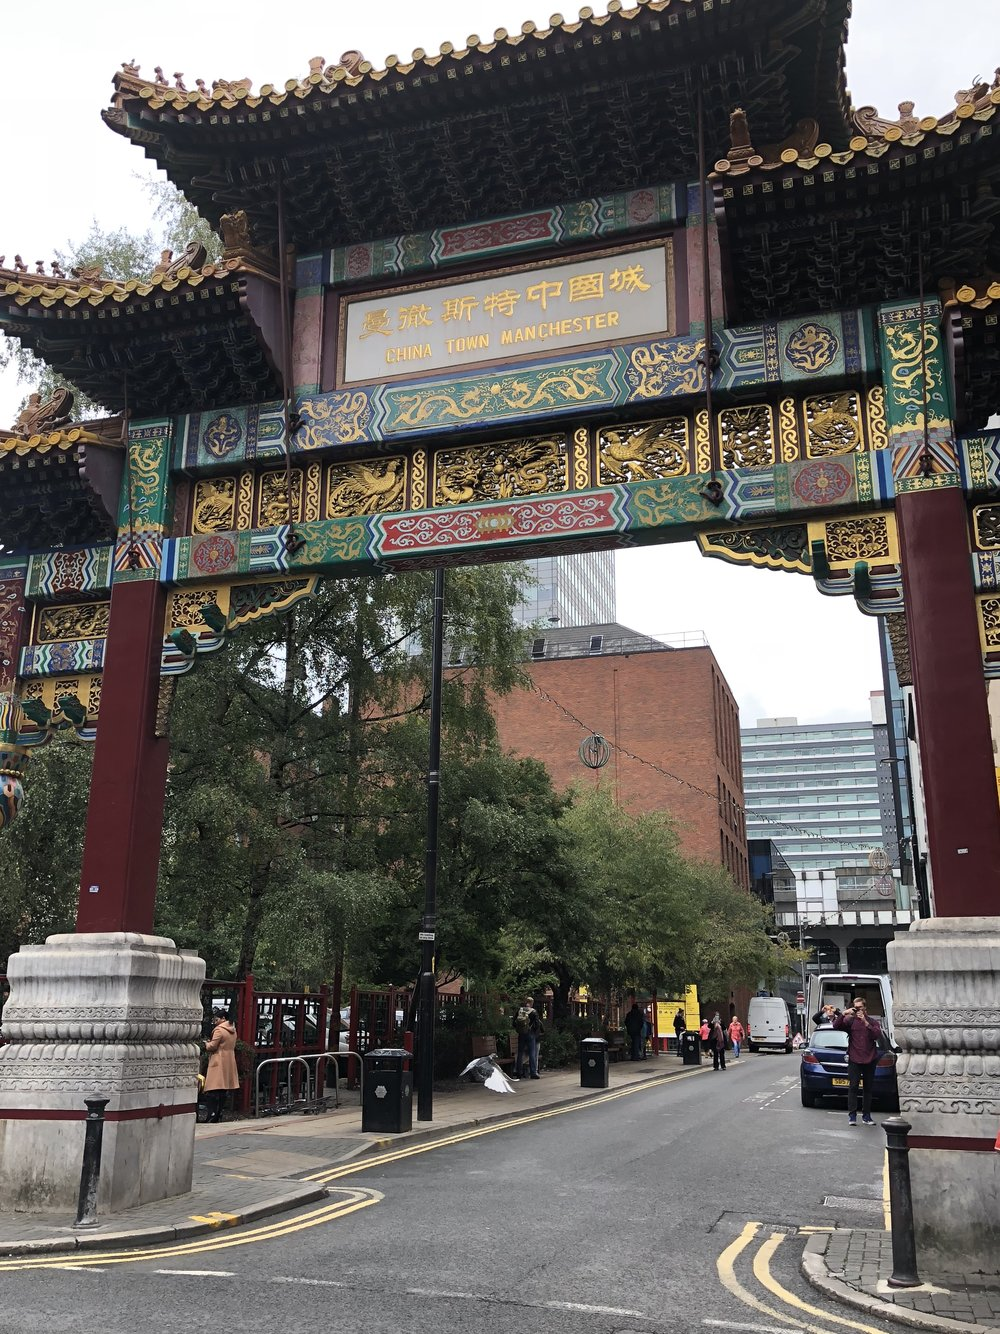 A charming oriental entrance to China Tower, a kilometre away from St Peter's Square shows the diversity of cultures in Manchester (Image: Sumi Sarma)